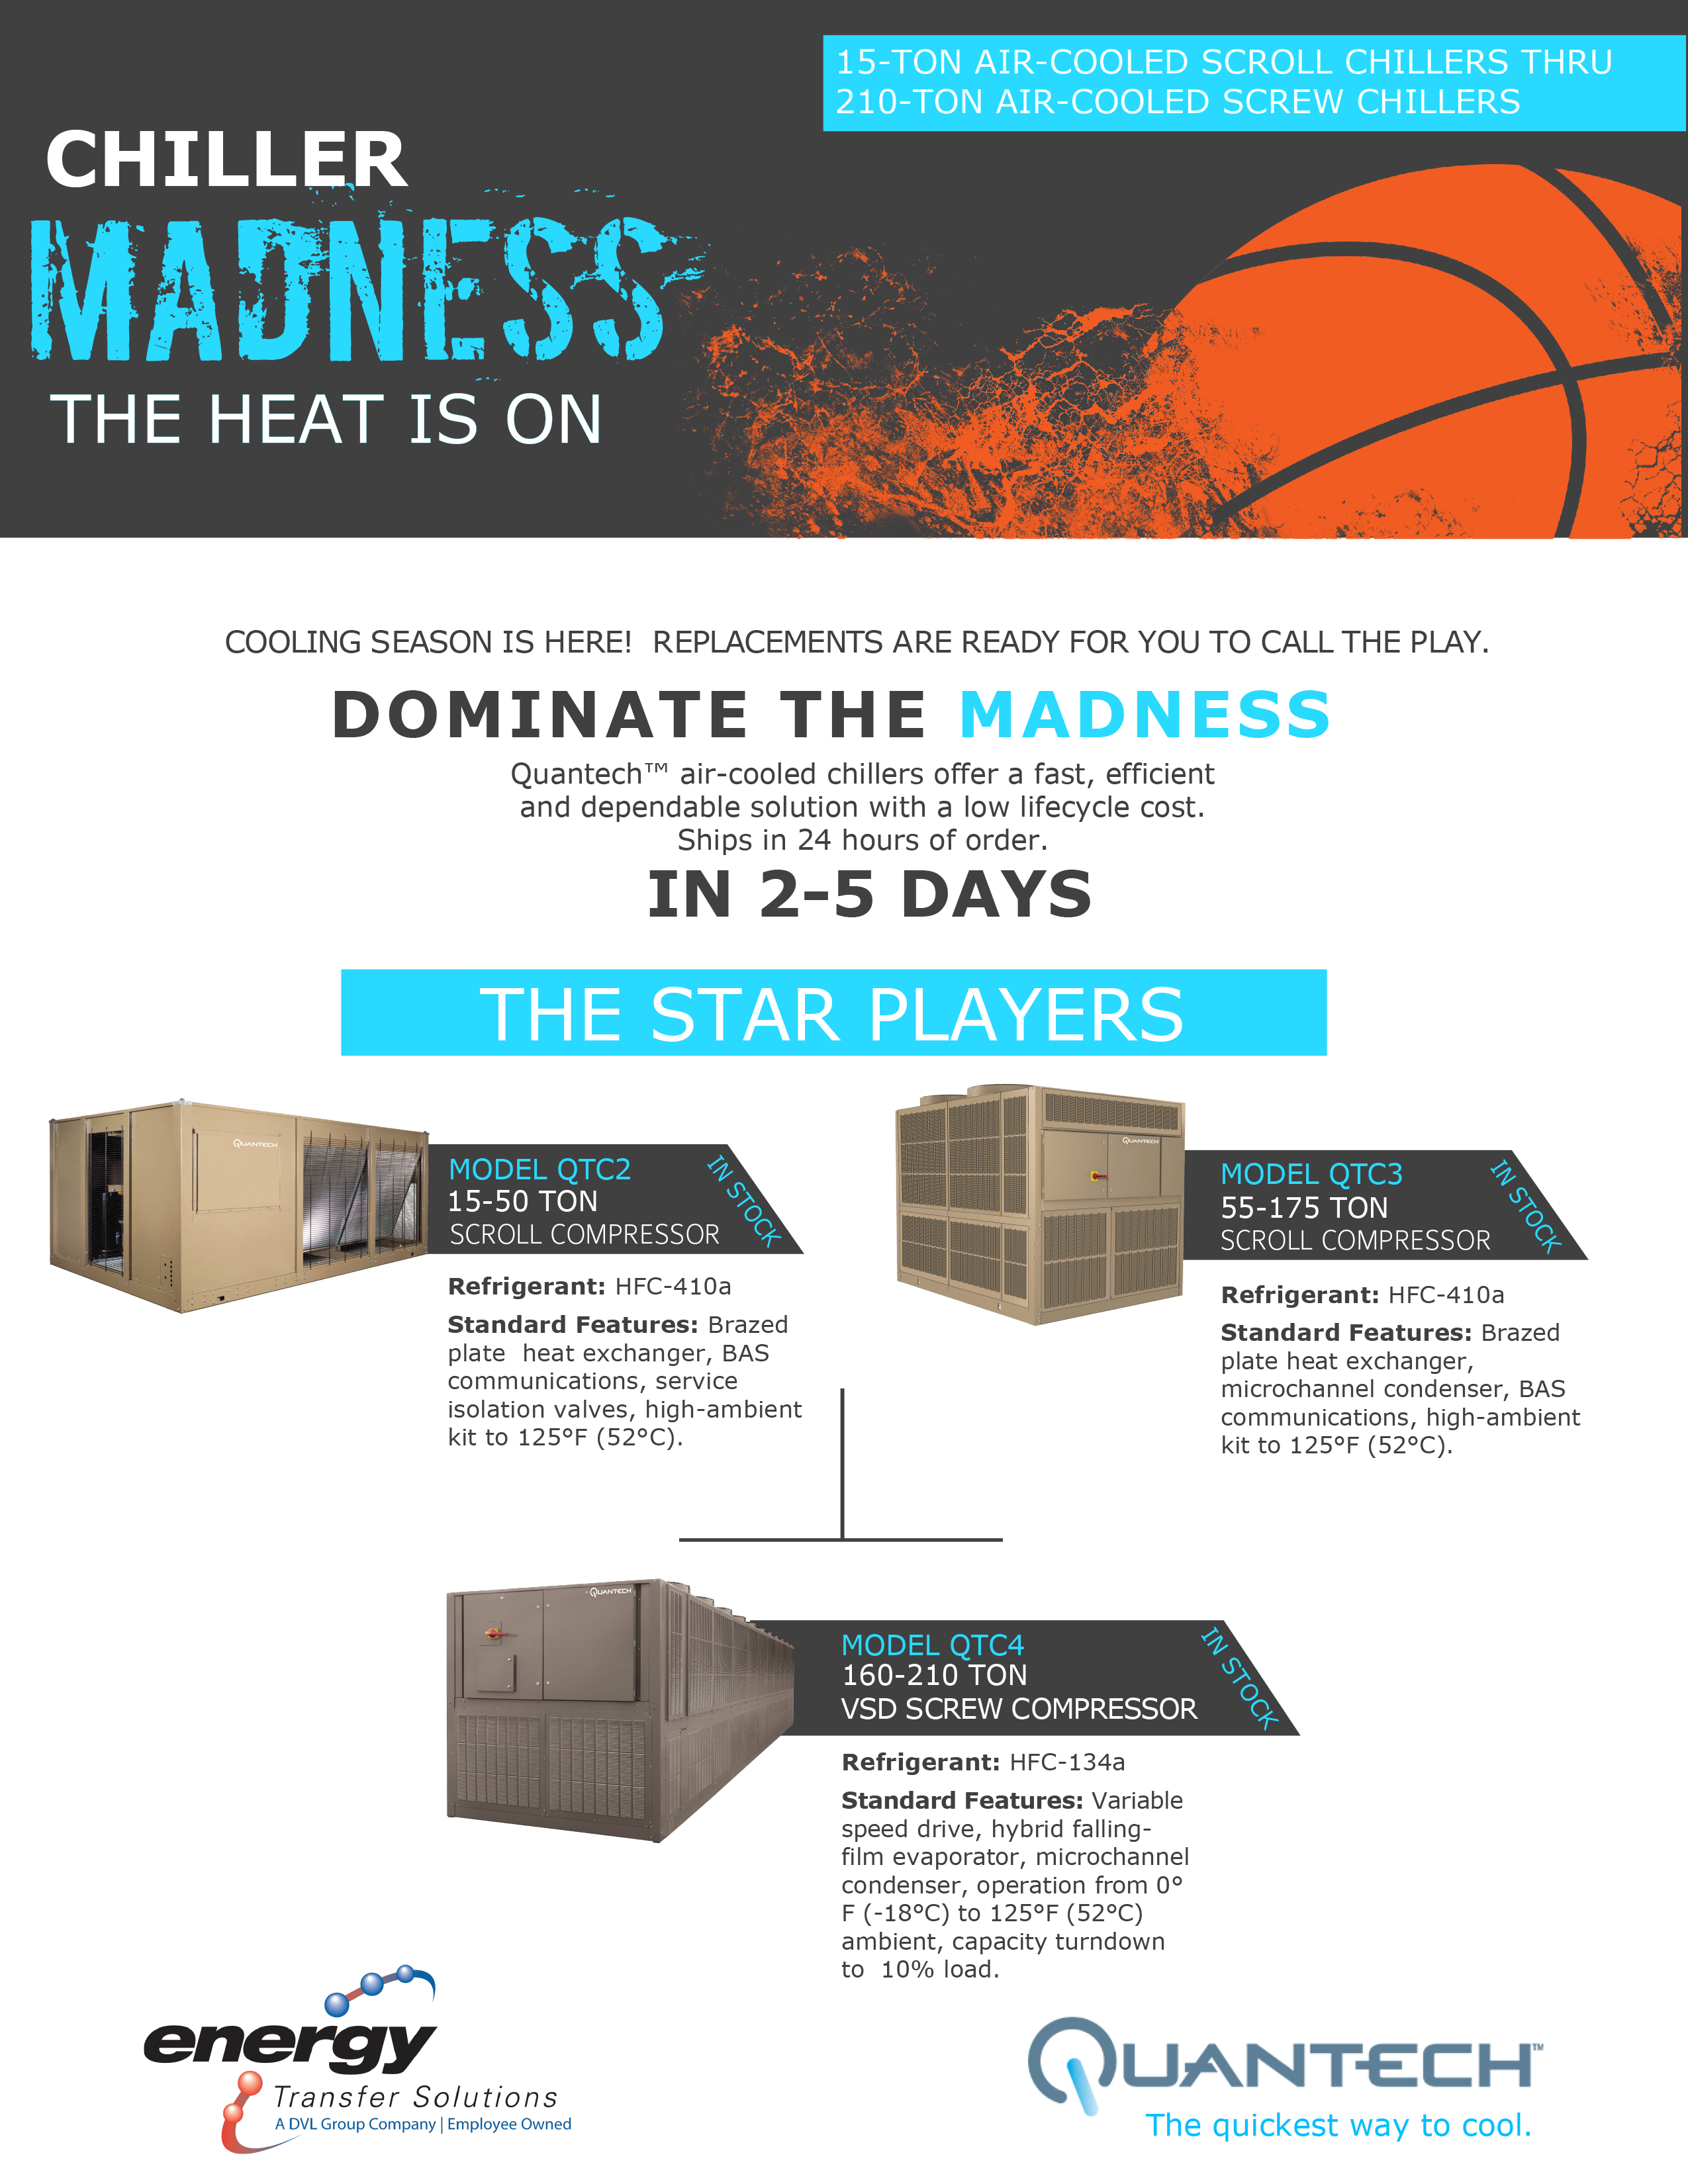 Conquering March Madness with Quantech